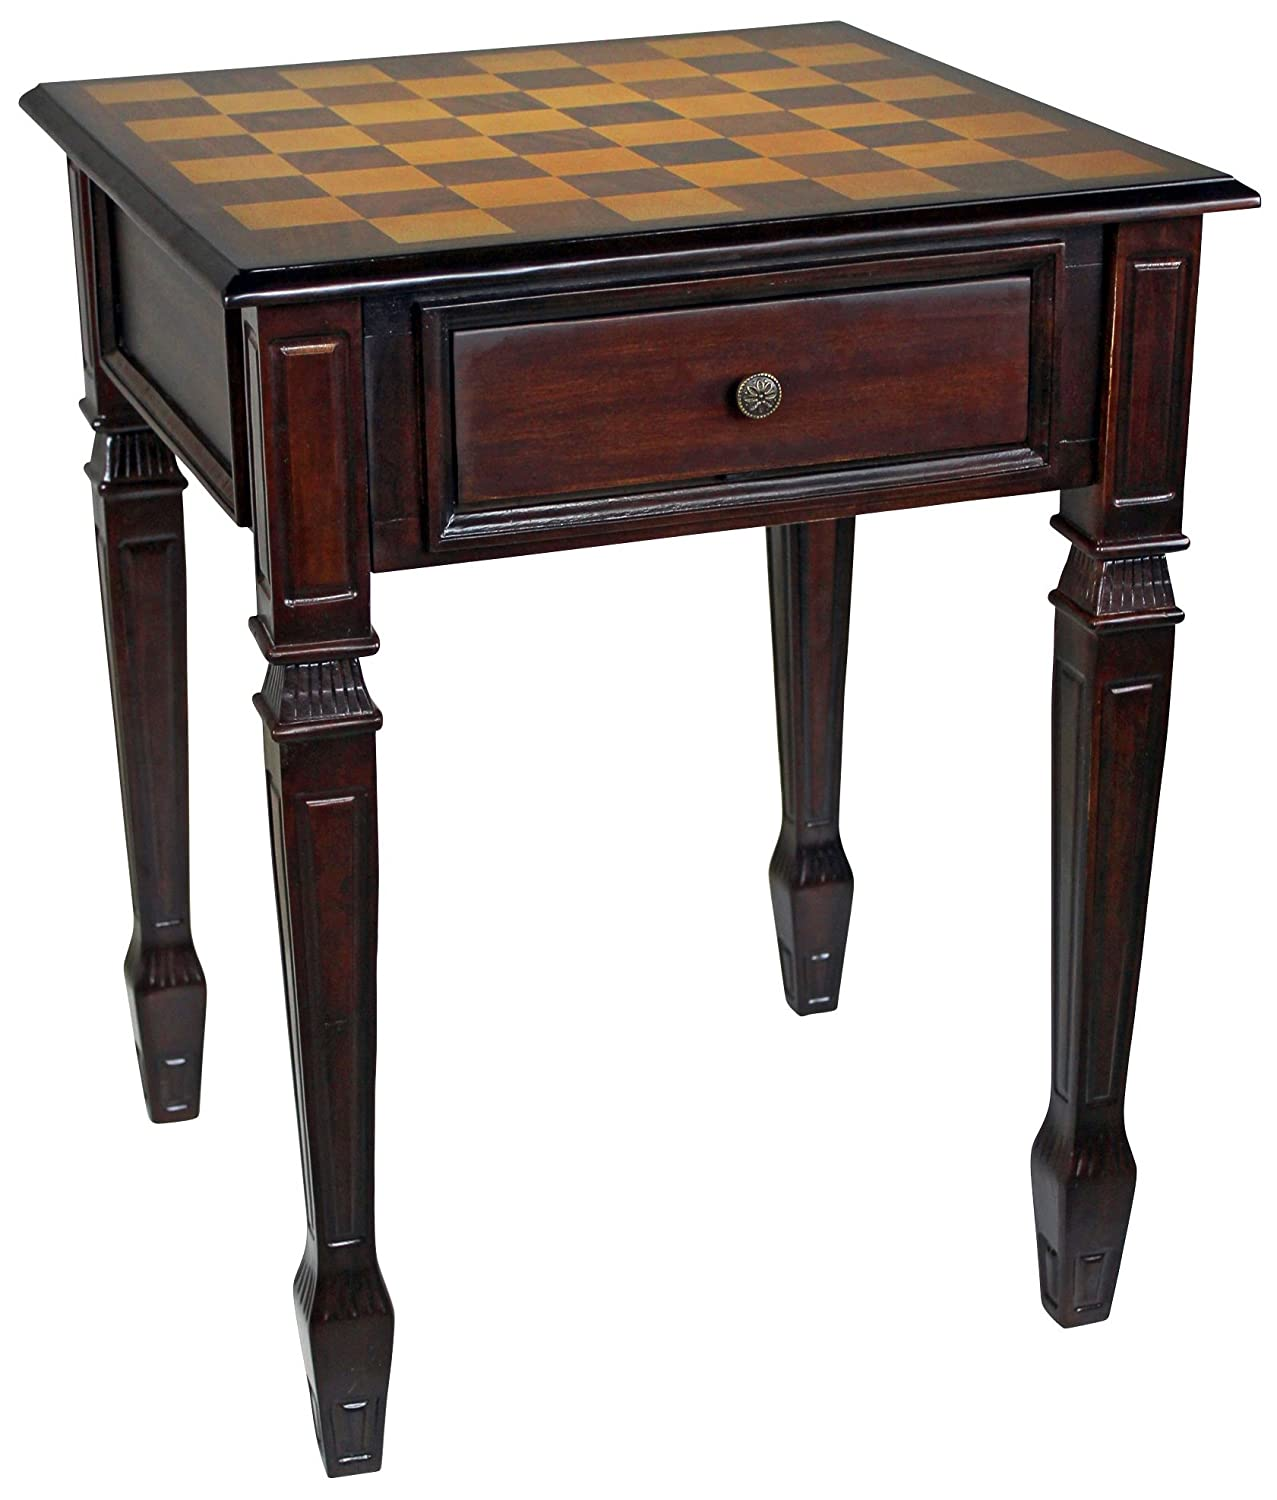 Design Toscano Walpole Manor Chess Gaming Table, 26 Inch, Hardwood, Walnut DE302